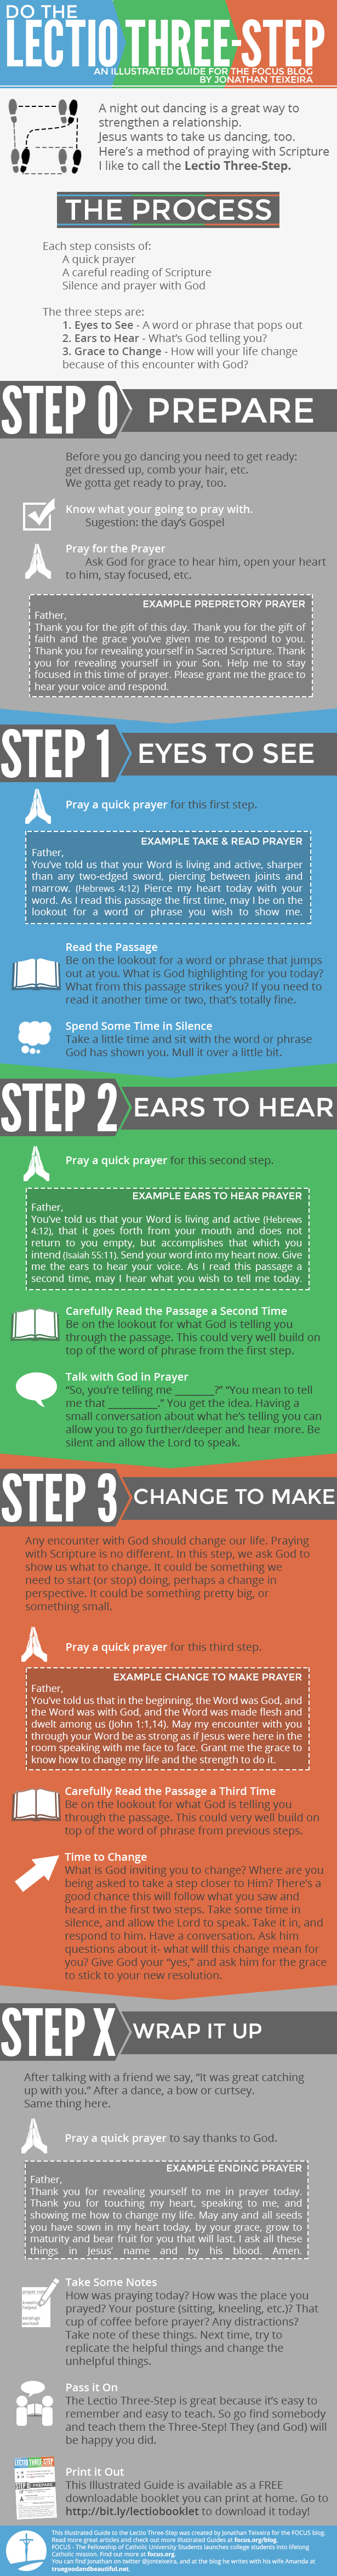 Do the Lectio 3-Step: An Easy Illustrated Guide to Praying